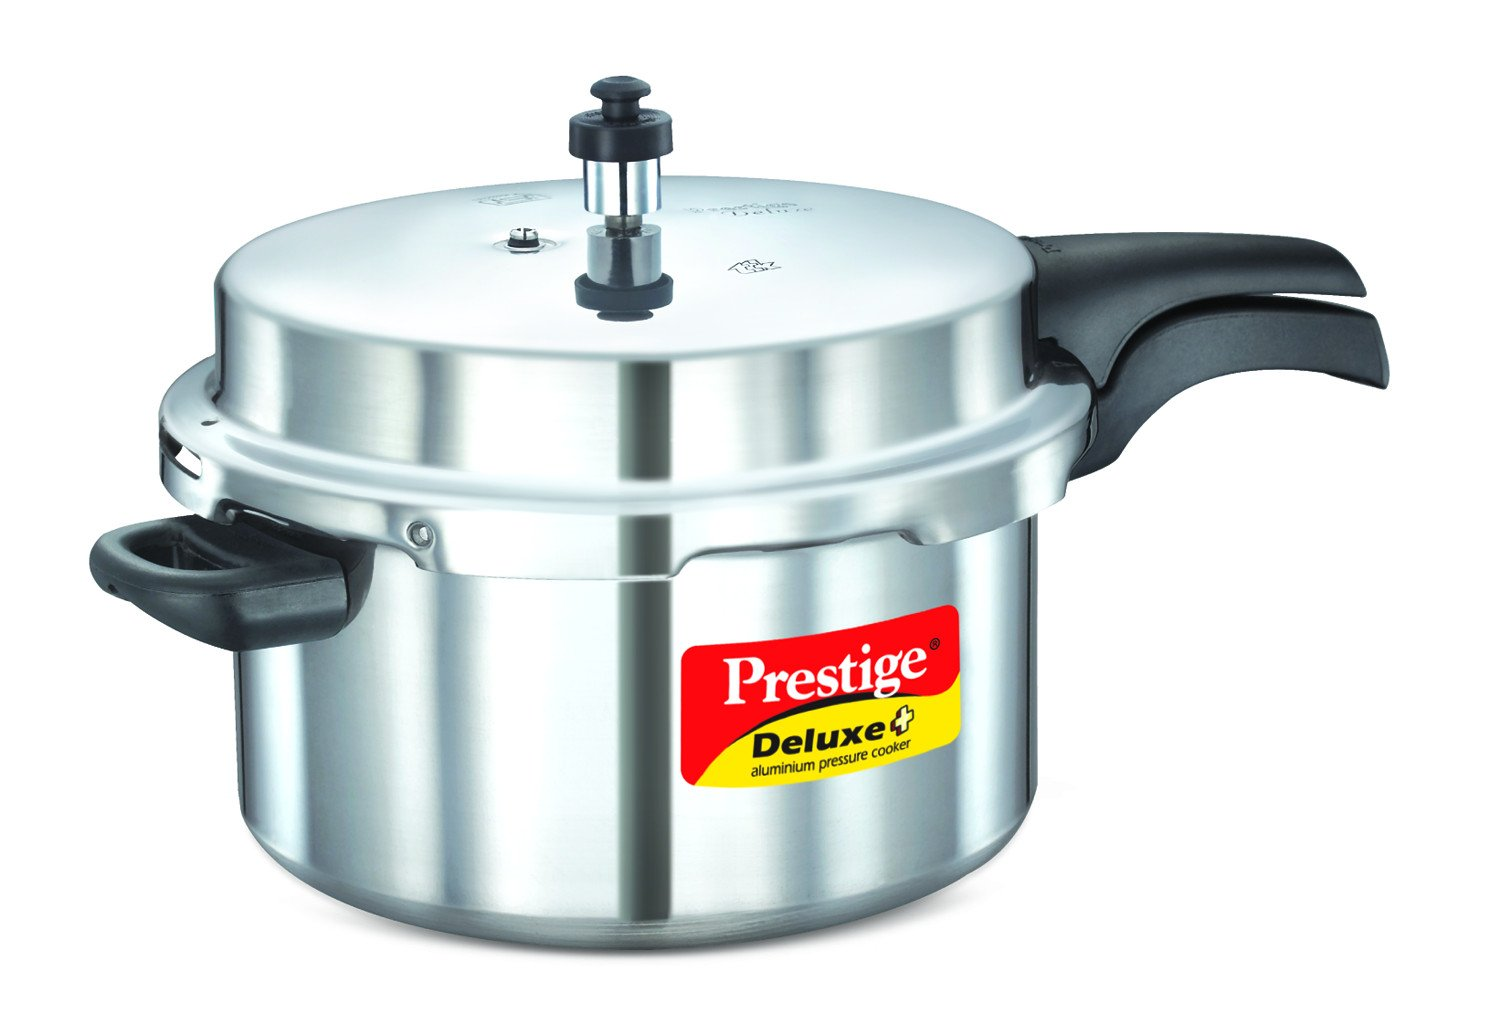 Prestige Deluxe Plus Induction Base Aluminium Pressure Cooker Silver 7.5L